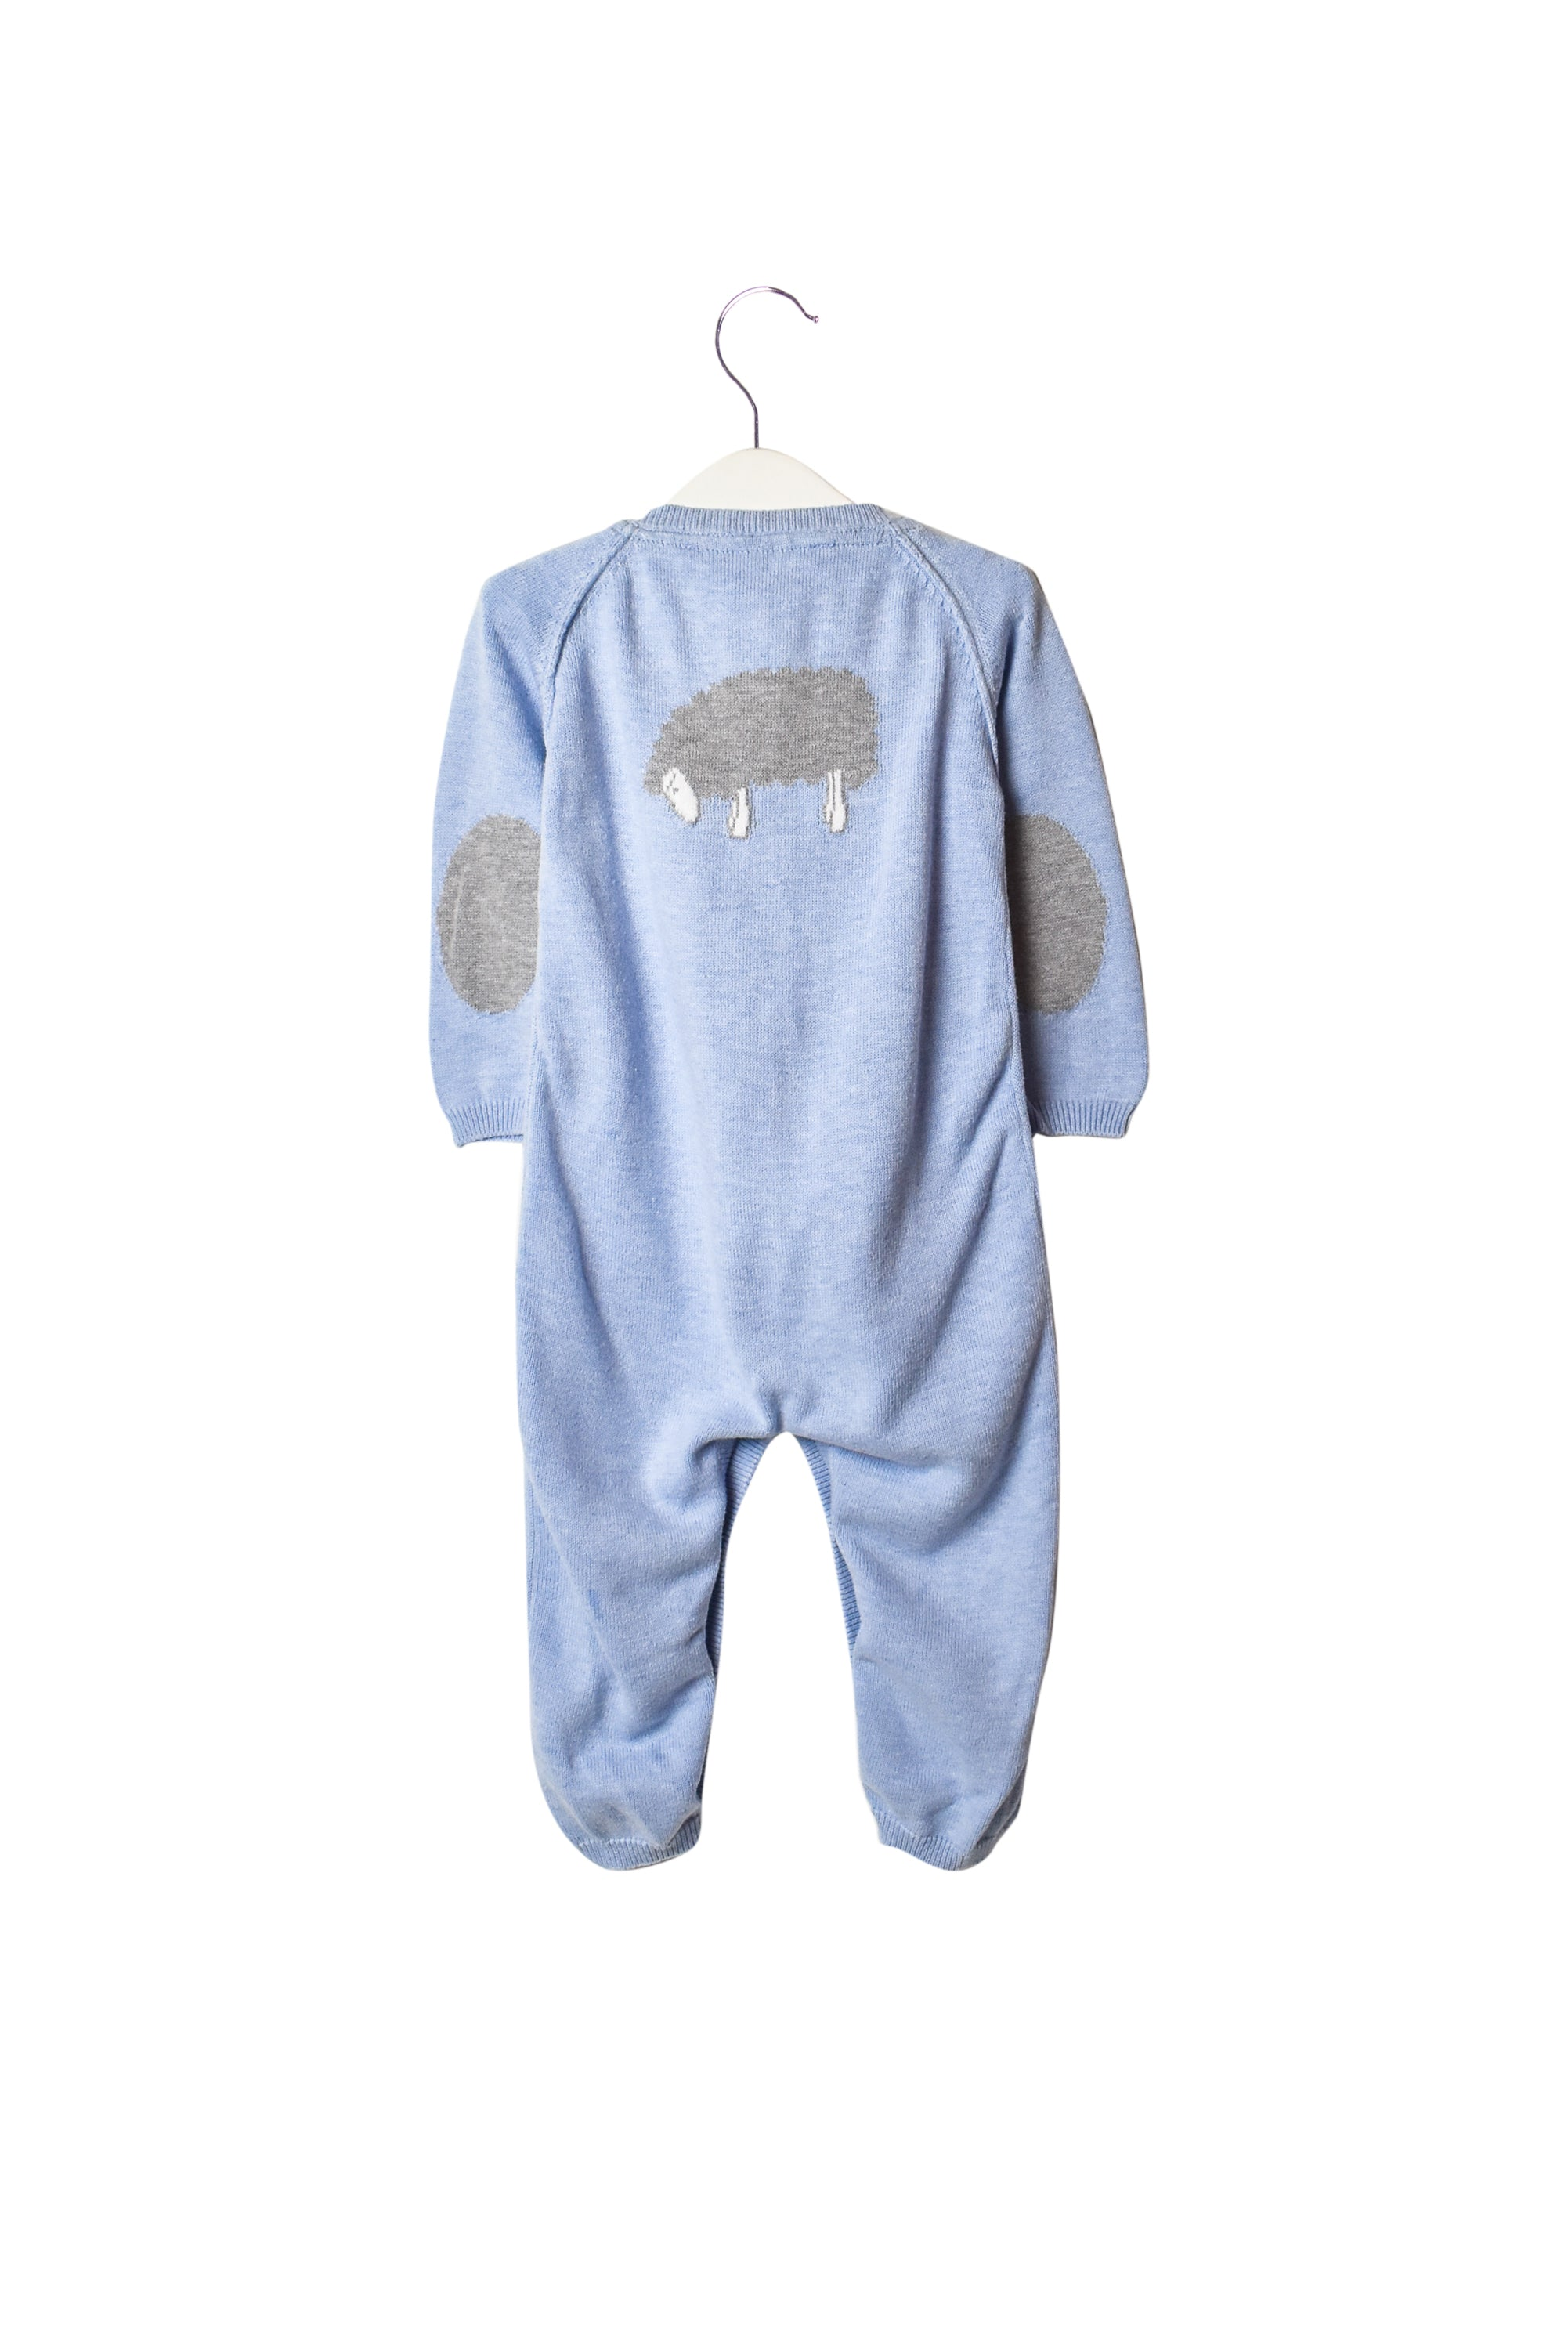 10006086 Chateau de Sable Baby~Jumpsuit 12M, Chateau de Sable Retykle | Online Baby & Kids Clothing Hong Kong